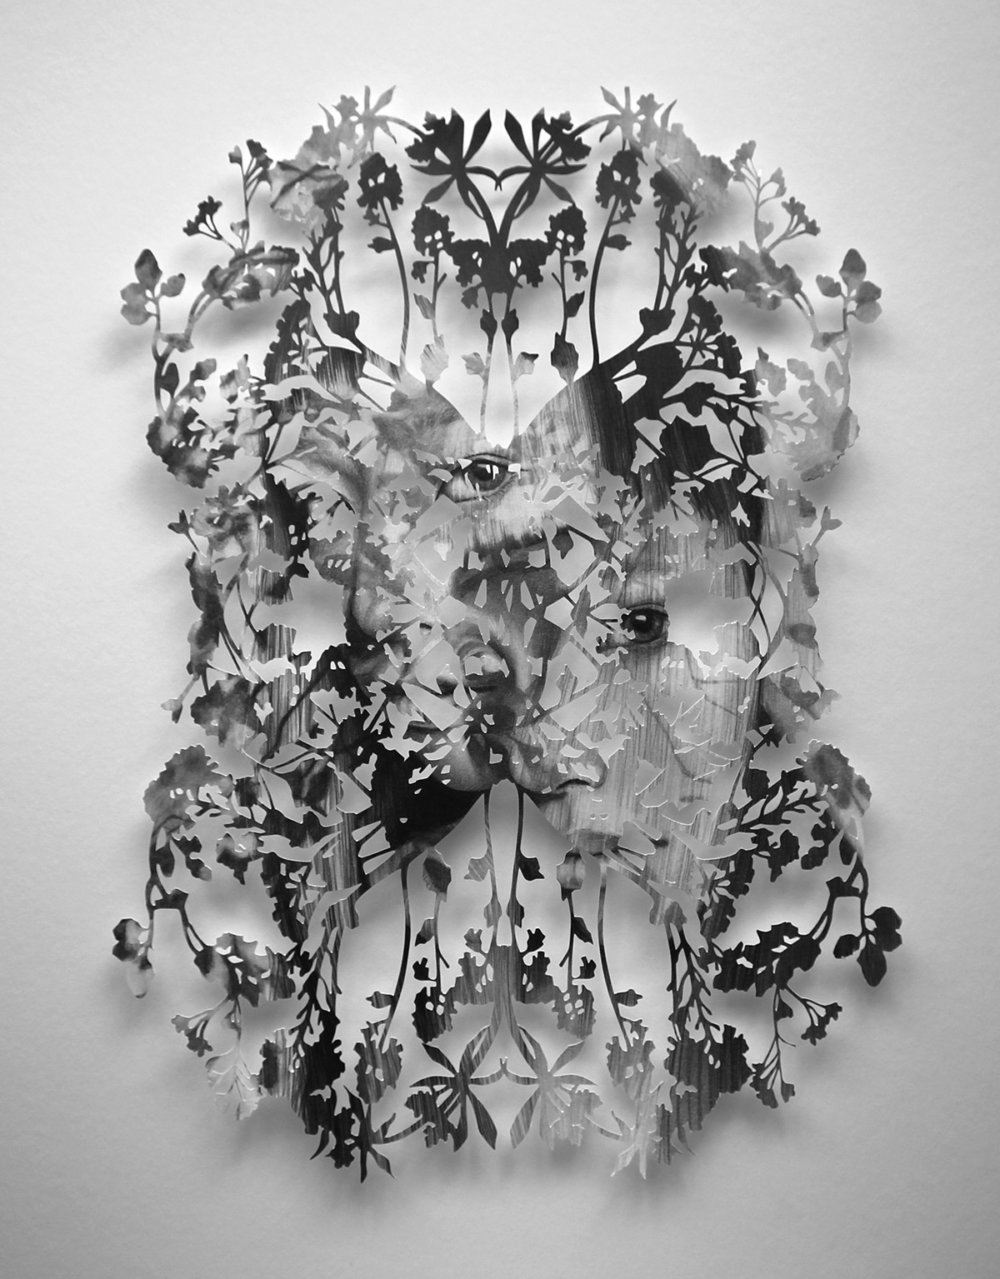 Fragmented Feelings Illustrated Papercut Works By Christine Kim 7